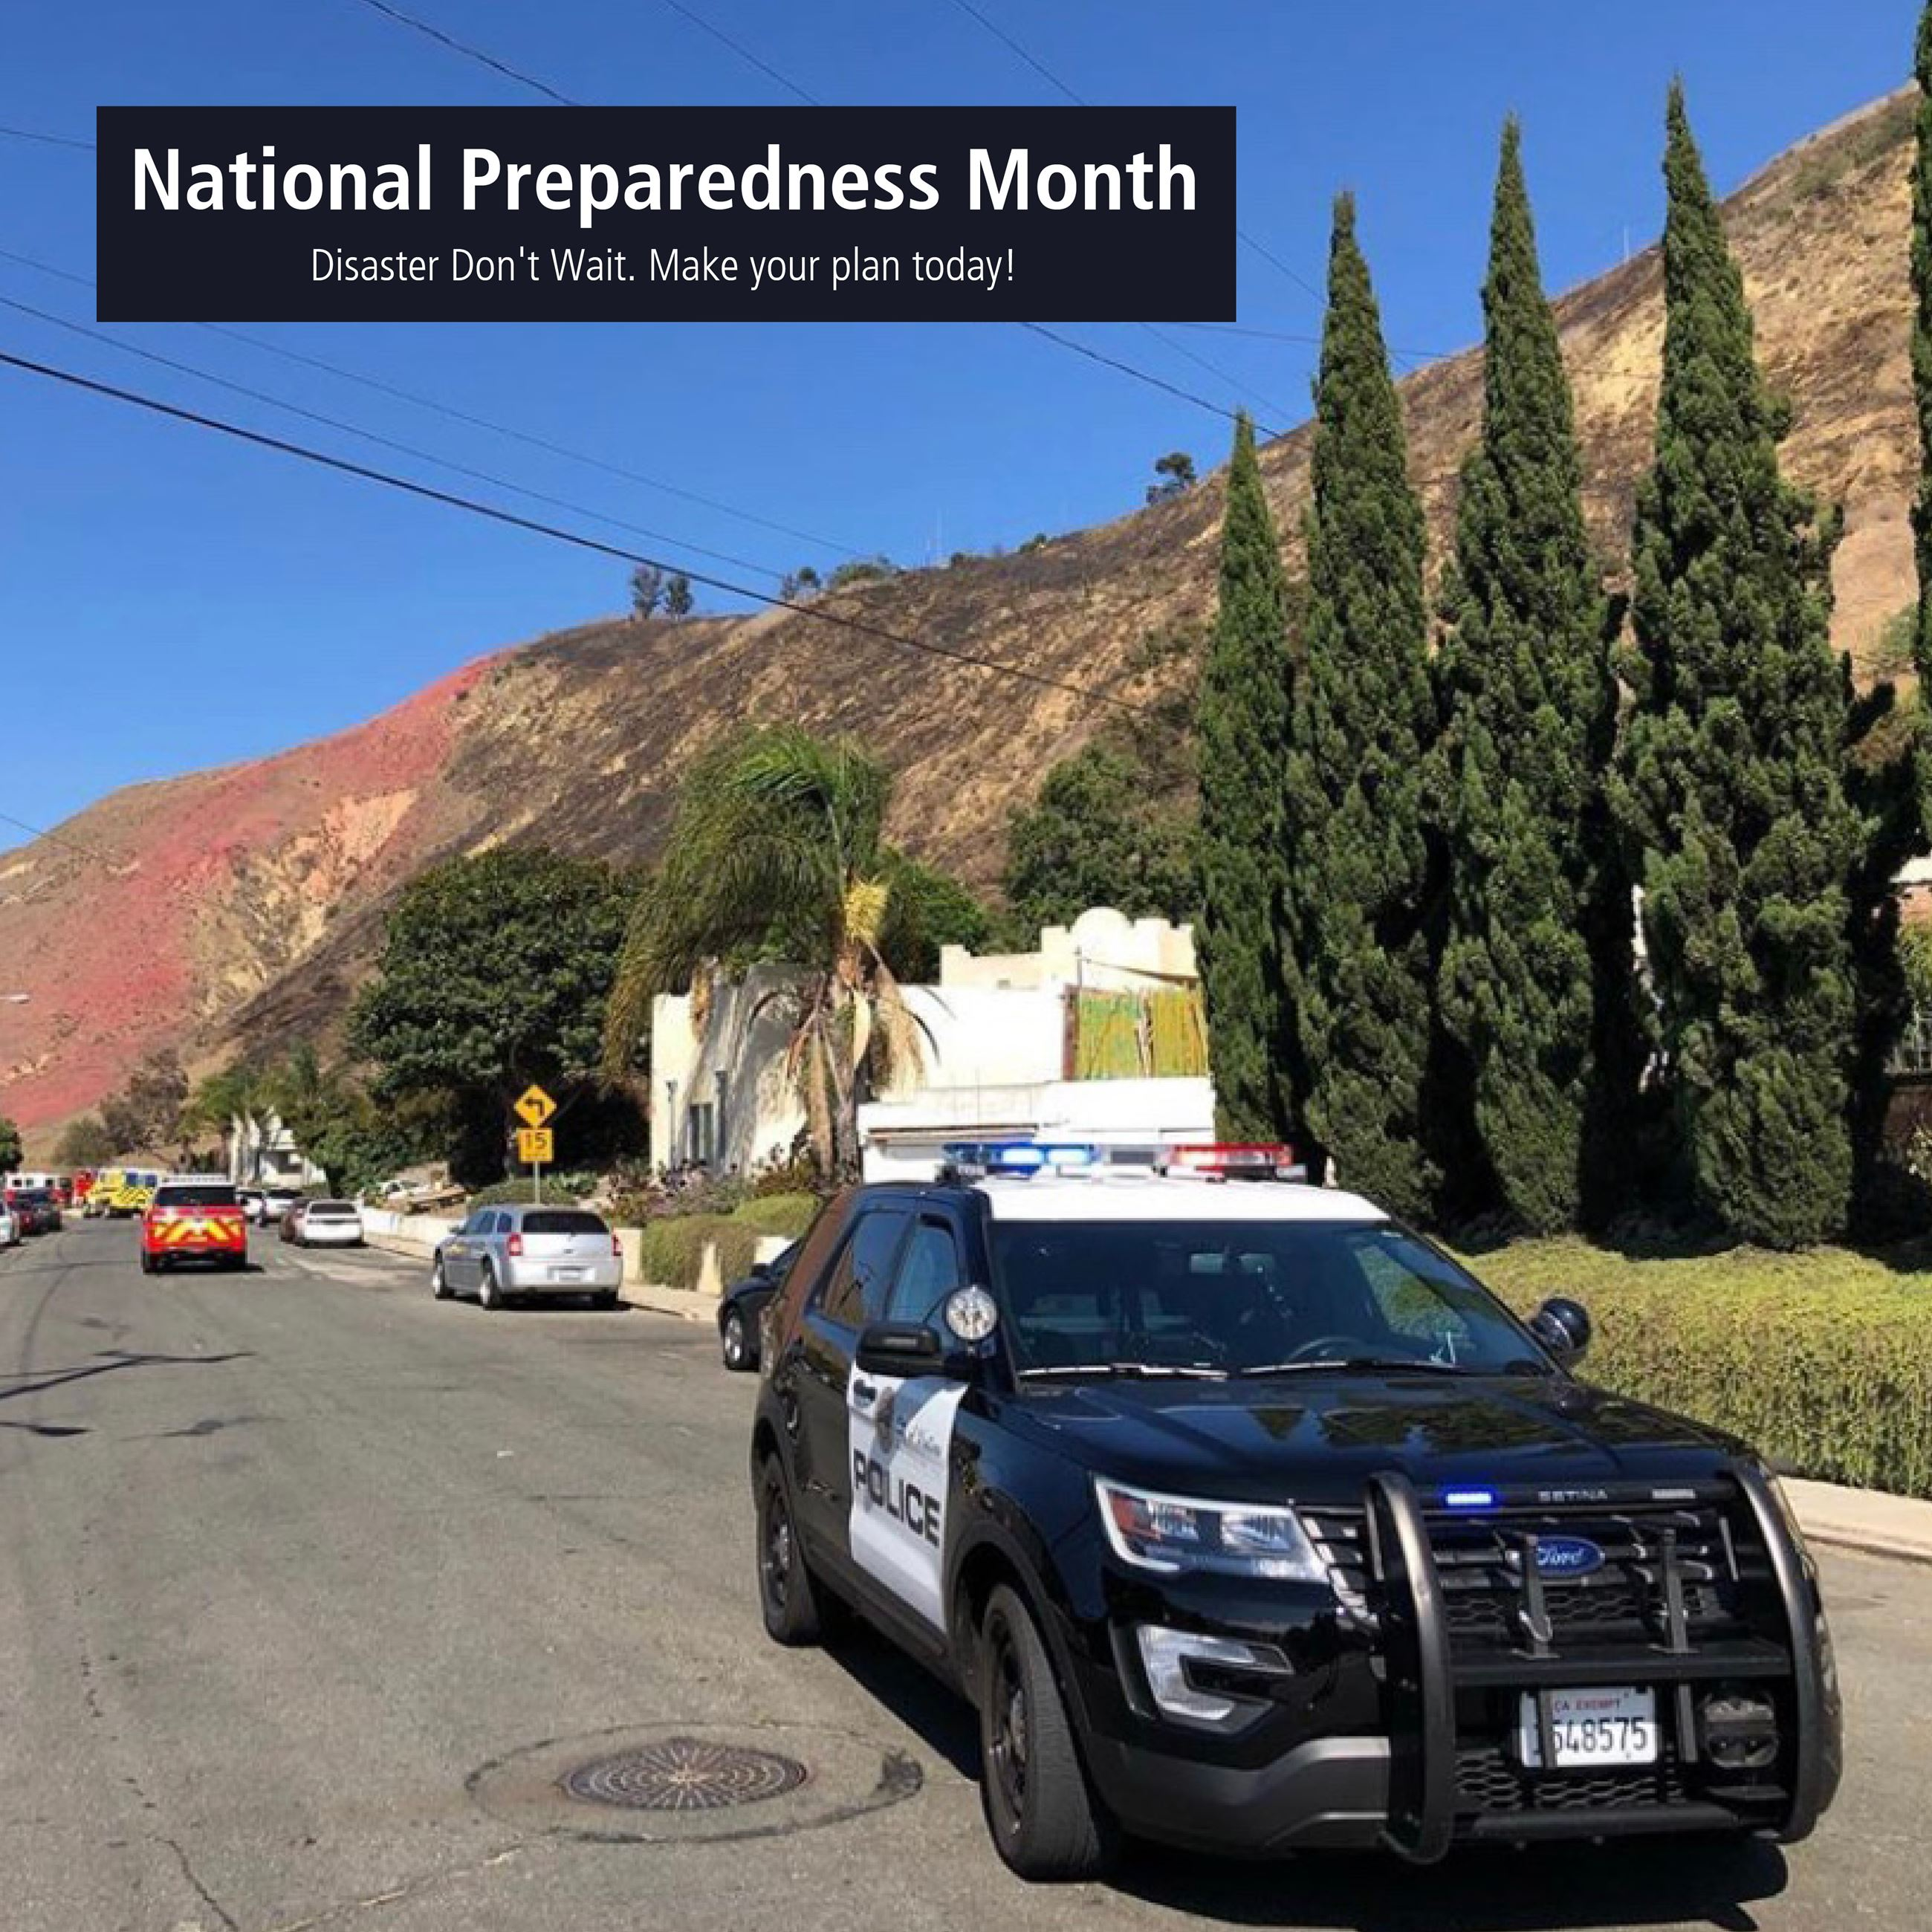 National Preparedness Month Opens in new window